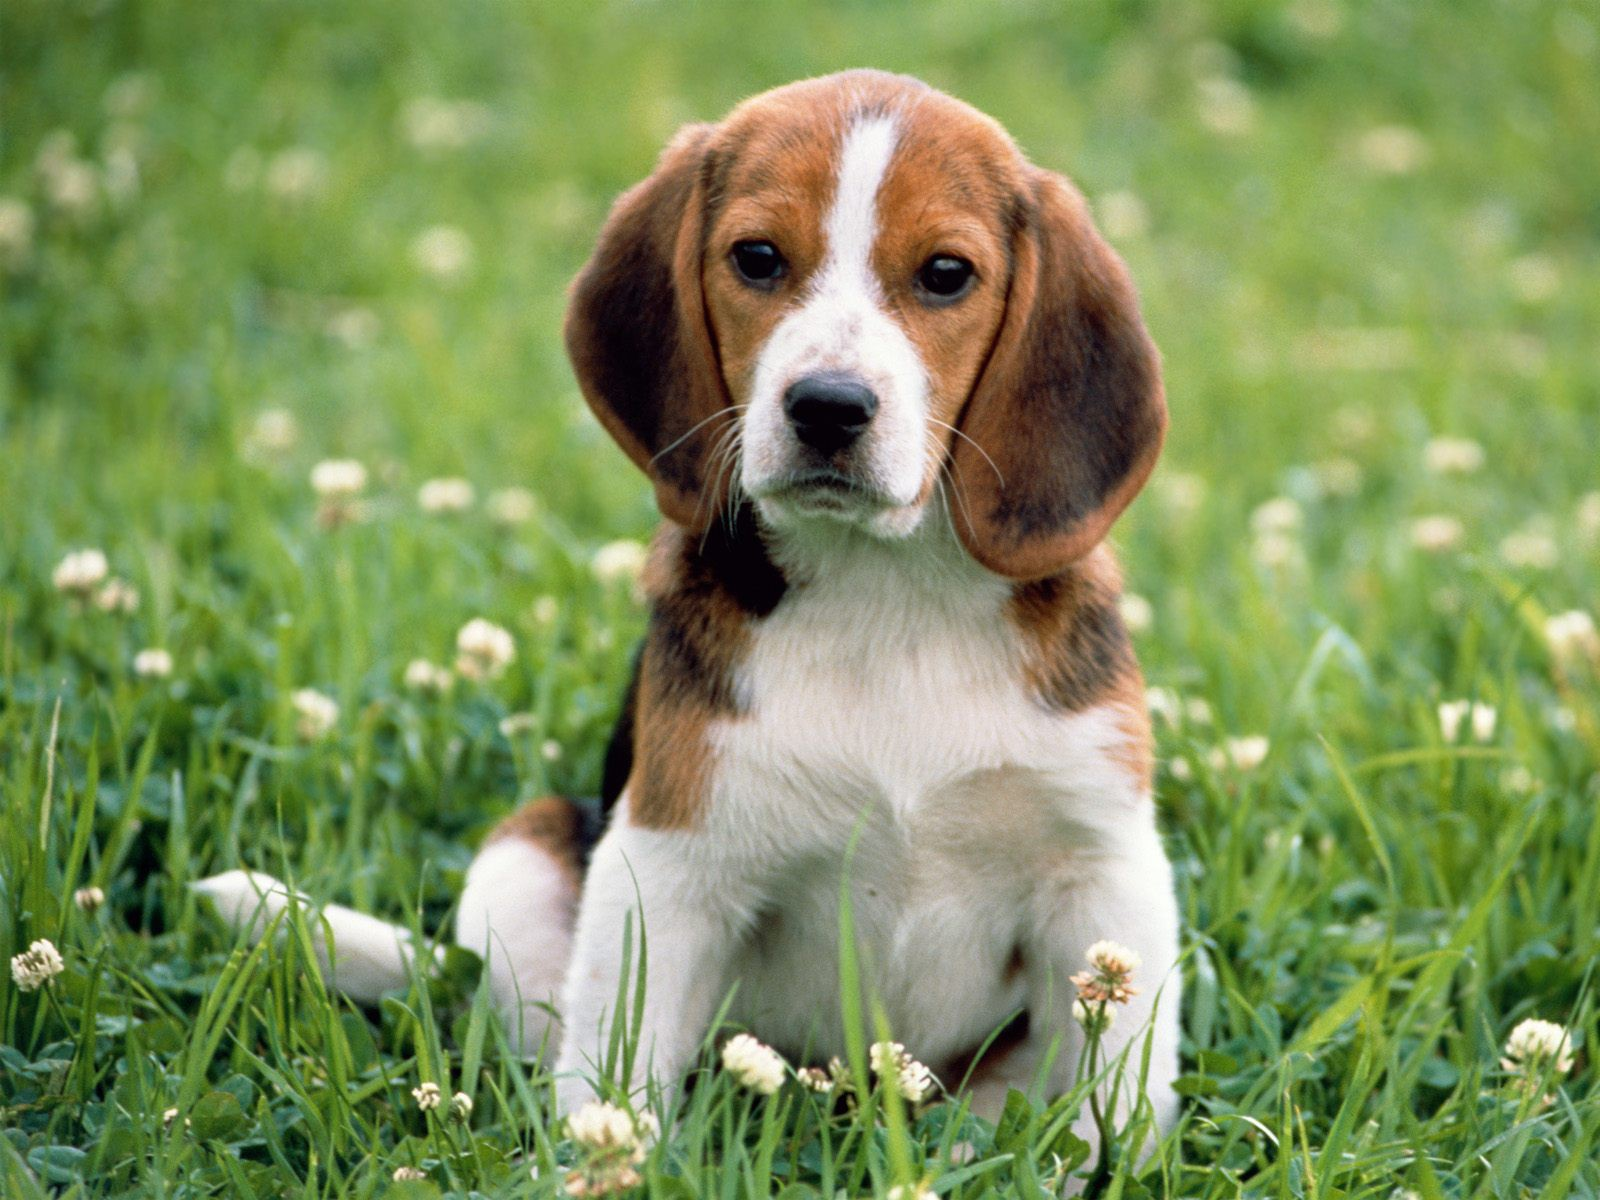 beagle-apple-dog-animal-for-sale.jpg